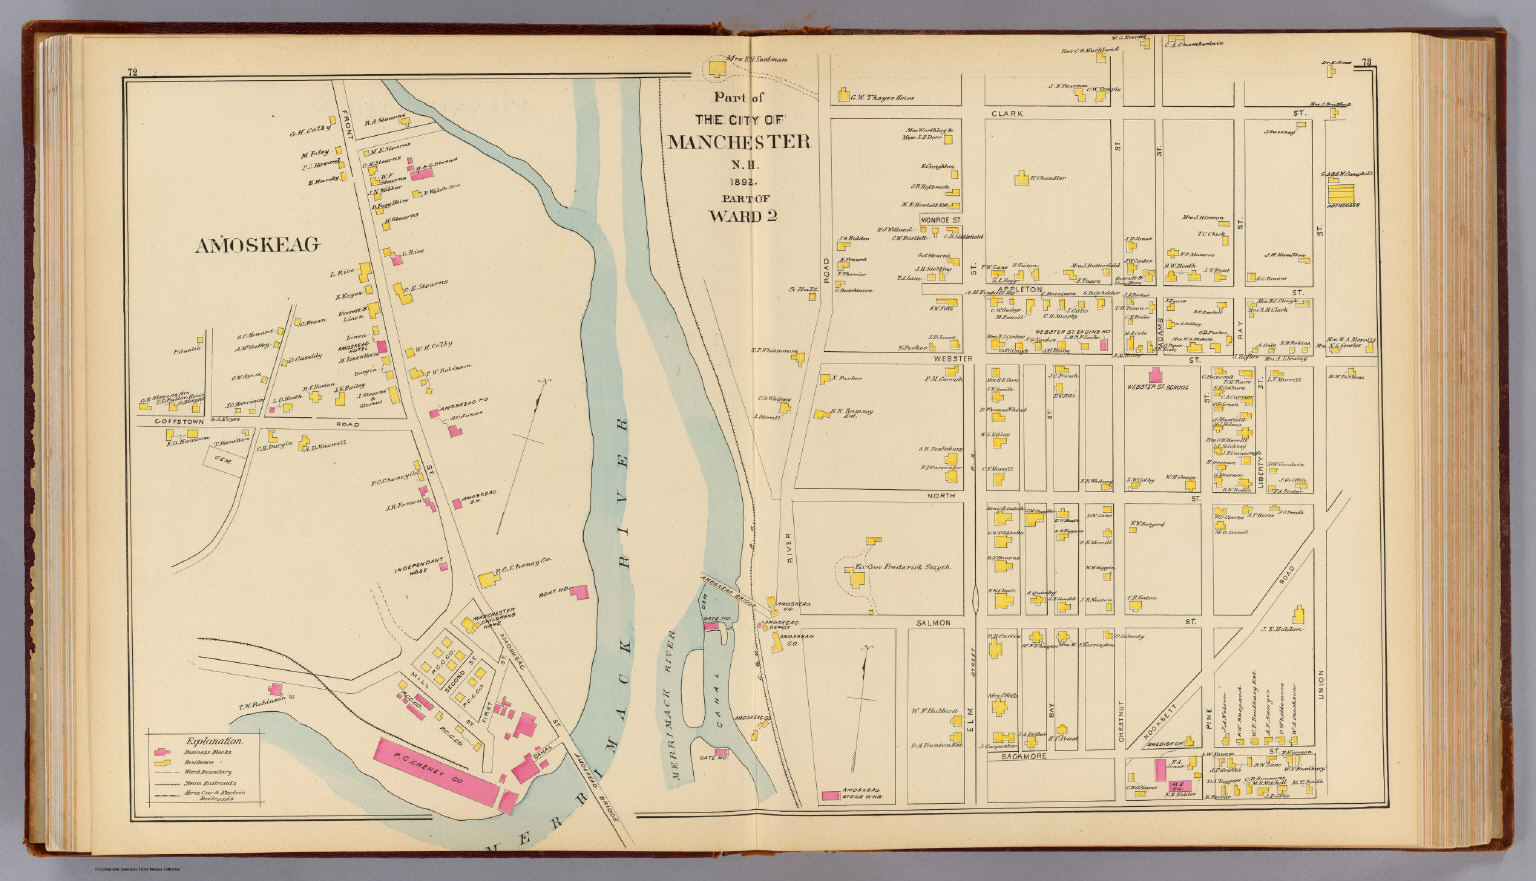 Manchester, N.H., Ward 2. - David Rumsey Historical Map Collection